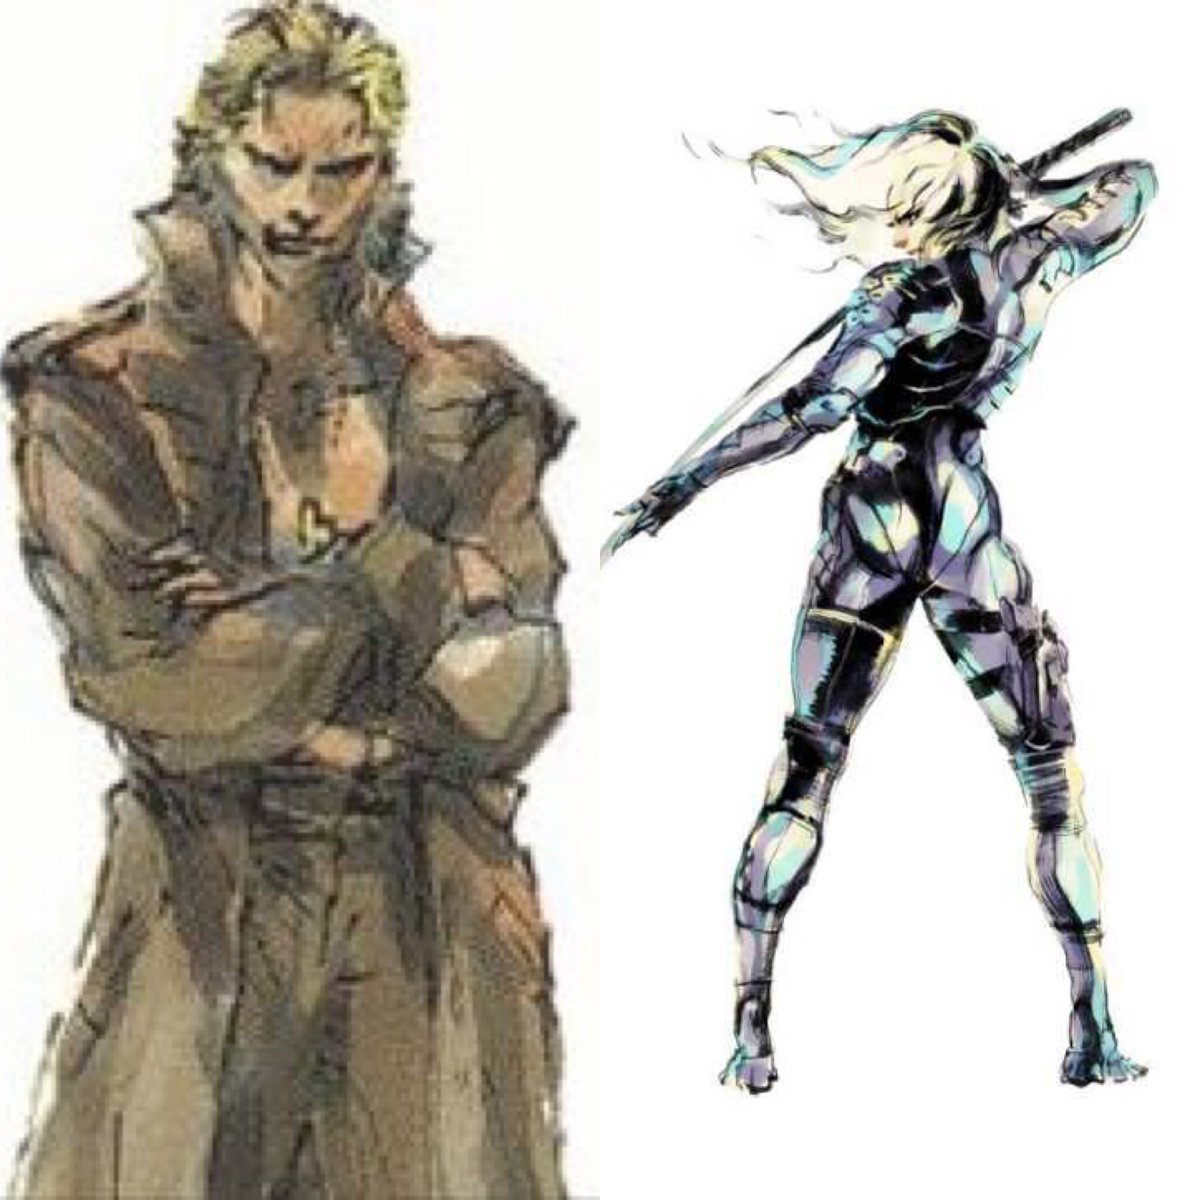 Tonight at 8pm BST we will be carrying on with MGS4! #MetalGearSolid But in the meantime, who out of the long haired blonde bois of the series would win in a straight up fist fight? Liquid Snake or Raiden?<br>http://pic.twitter.com/PLRpU3jZ8n